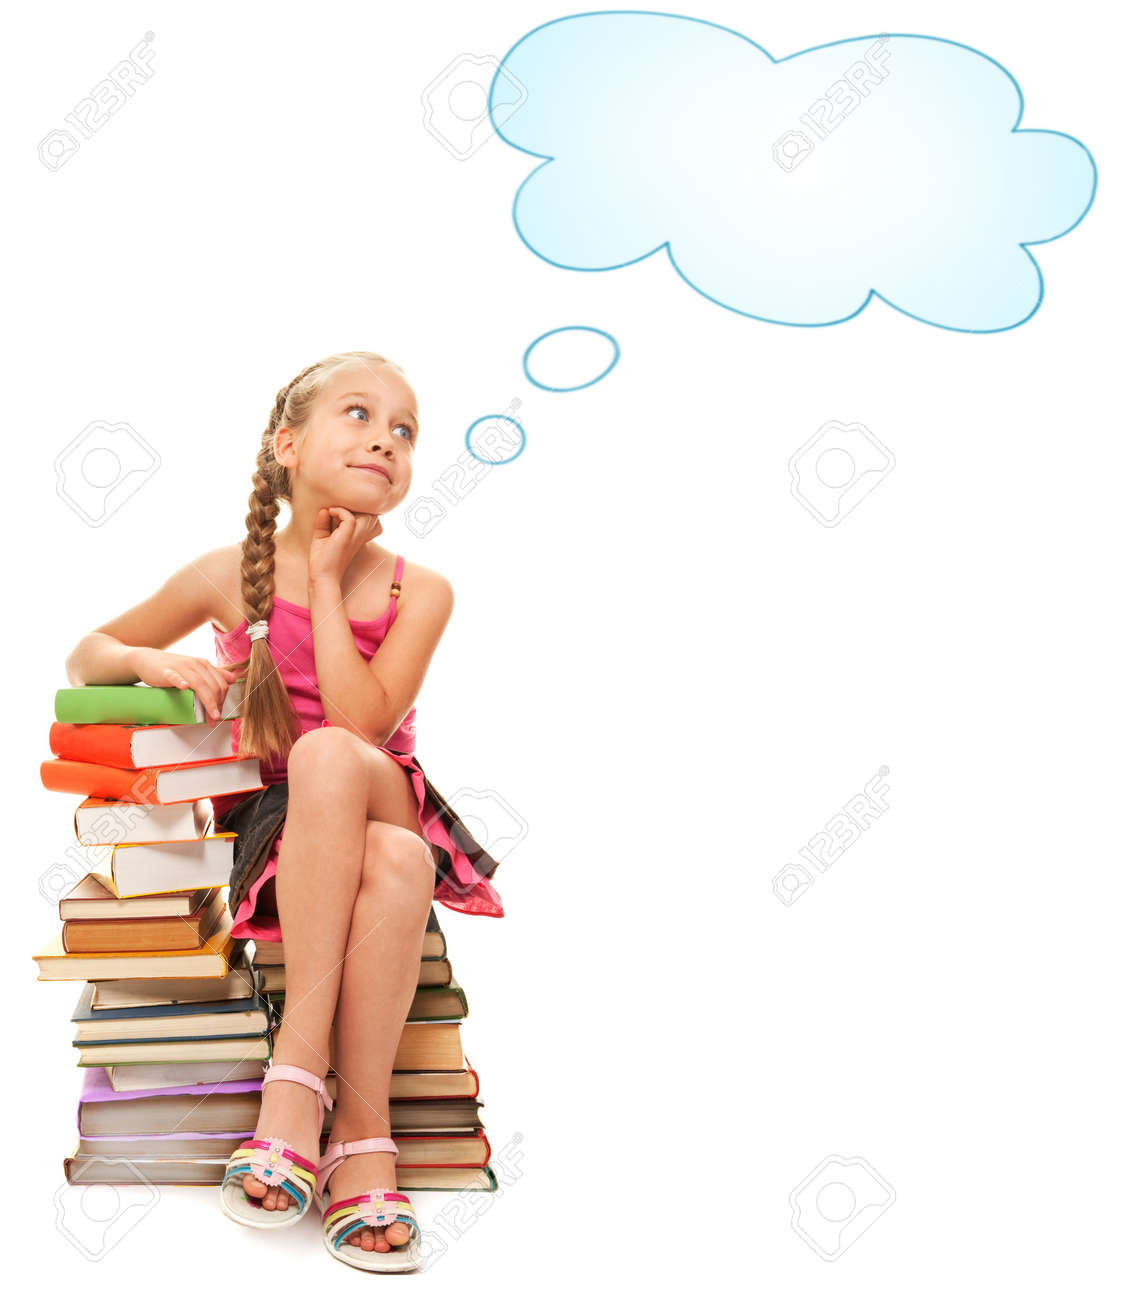 Little schoolgirl sitting on a stack of books Stock Photo - 5219415